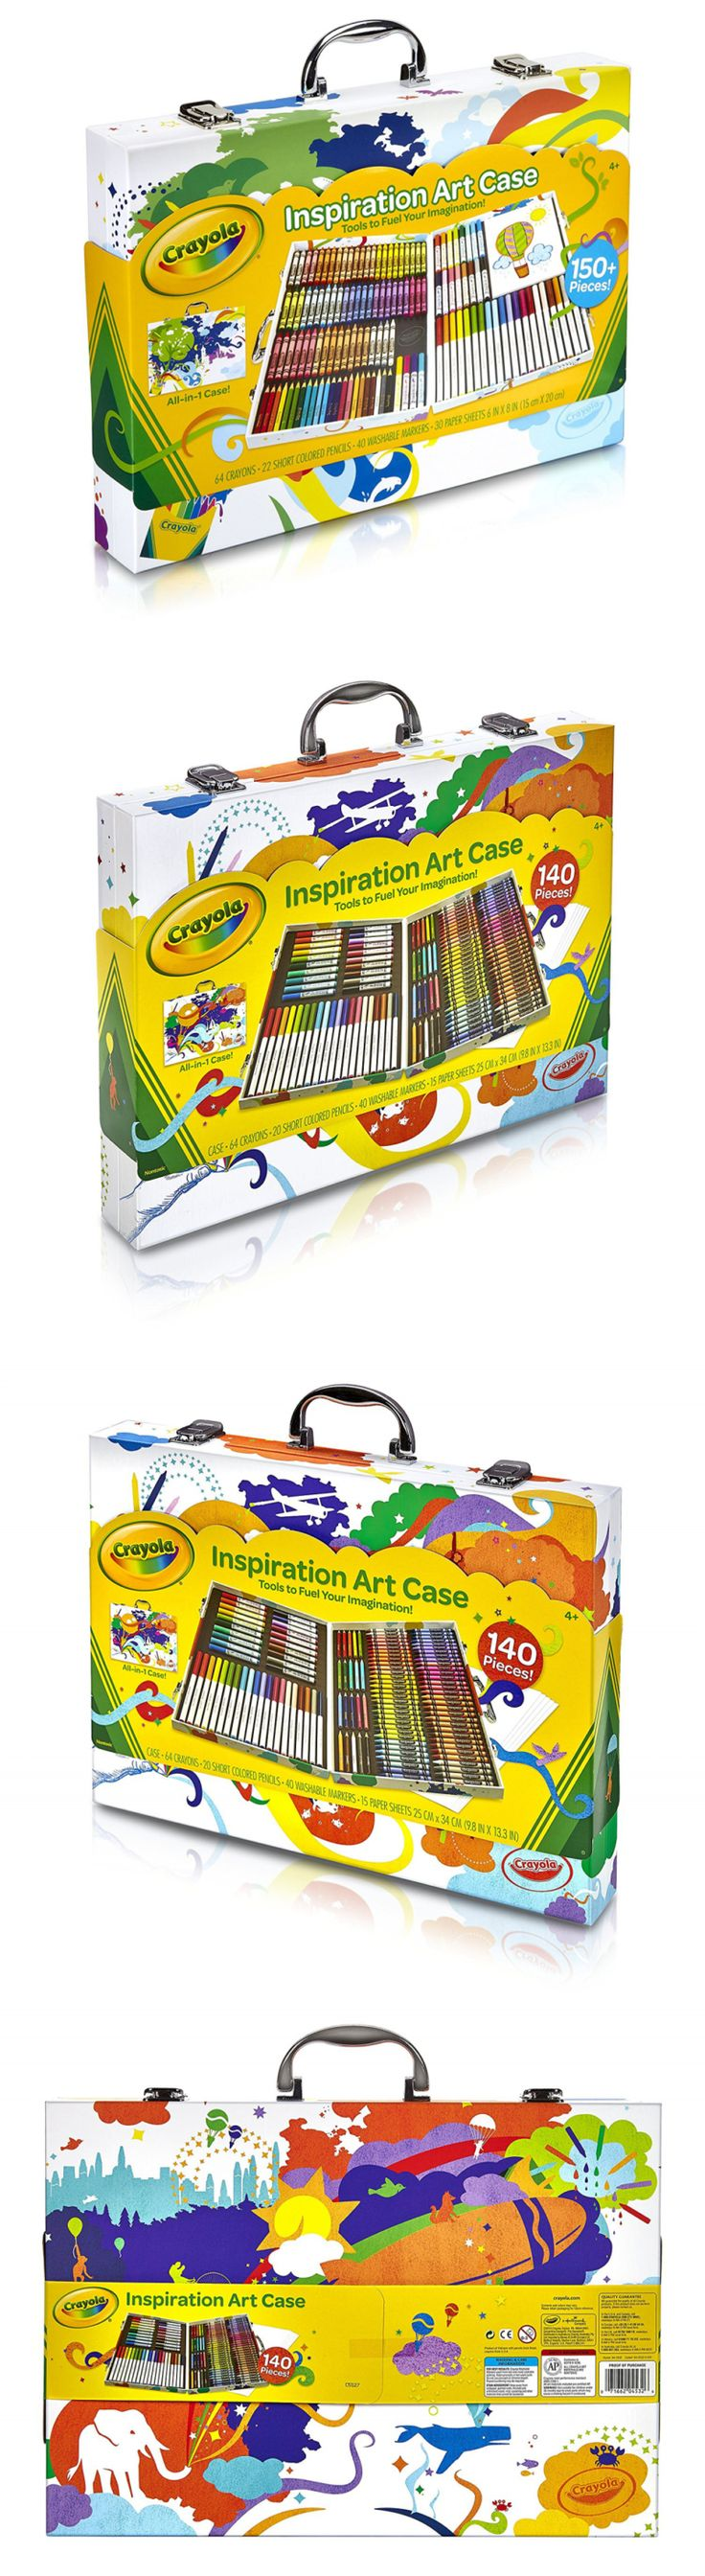 Crayon melting art images amp pictures becuo - Crayons 116653 Crayola Inspiration Art Case Art Tools 140 Pieces Crayons Colored